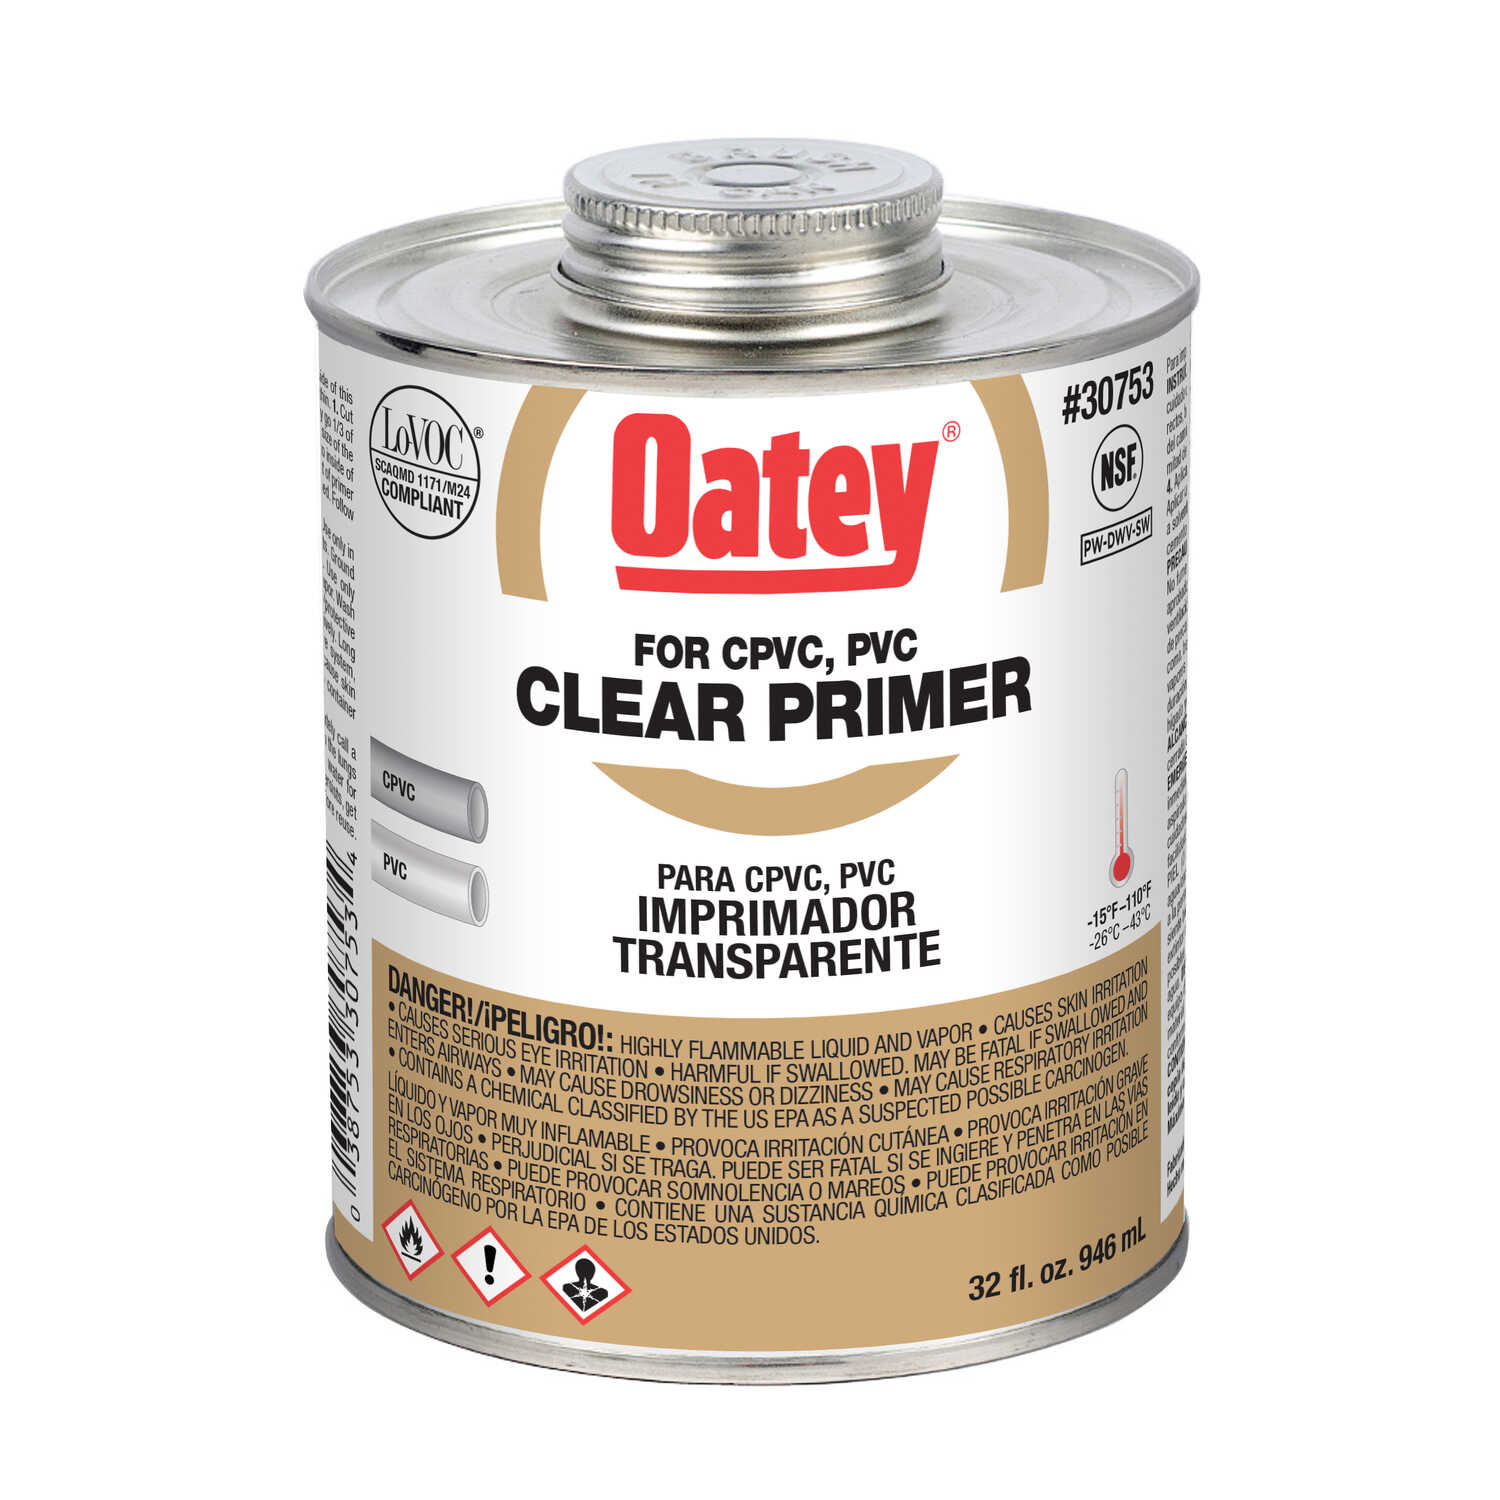 Oatey  Clear  Primer and Cement  For CPVC/PVC 32 oz.